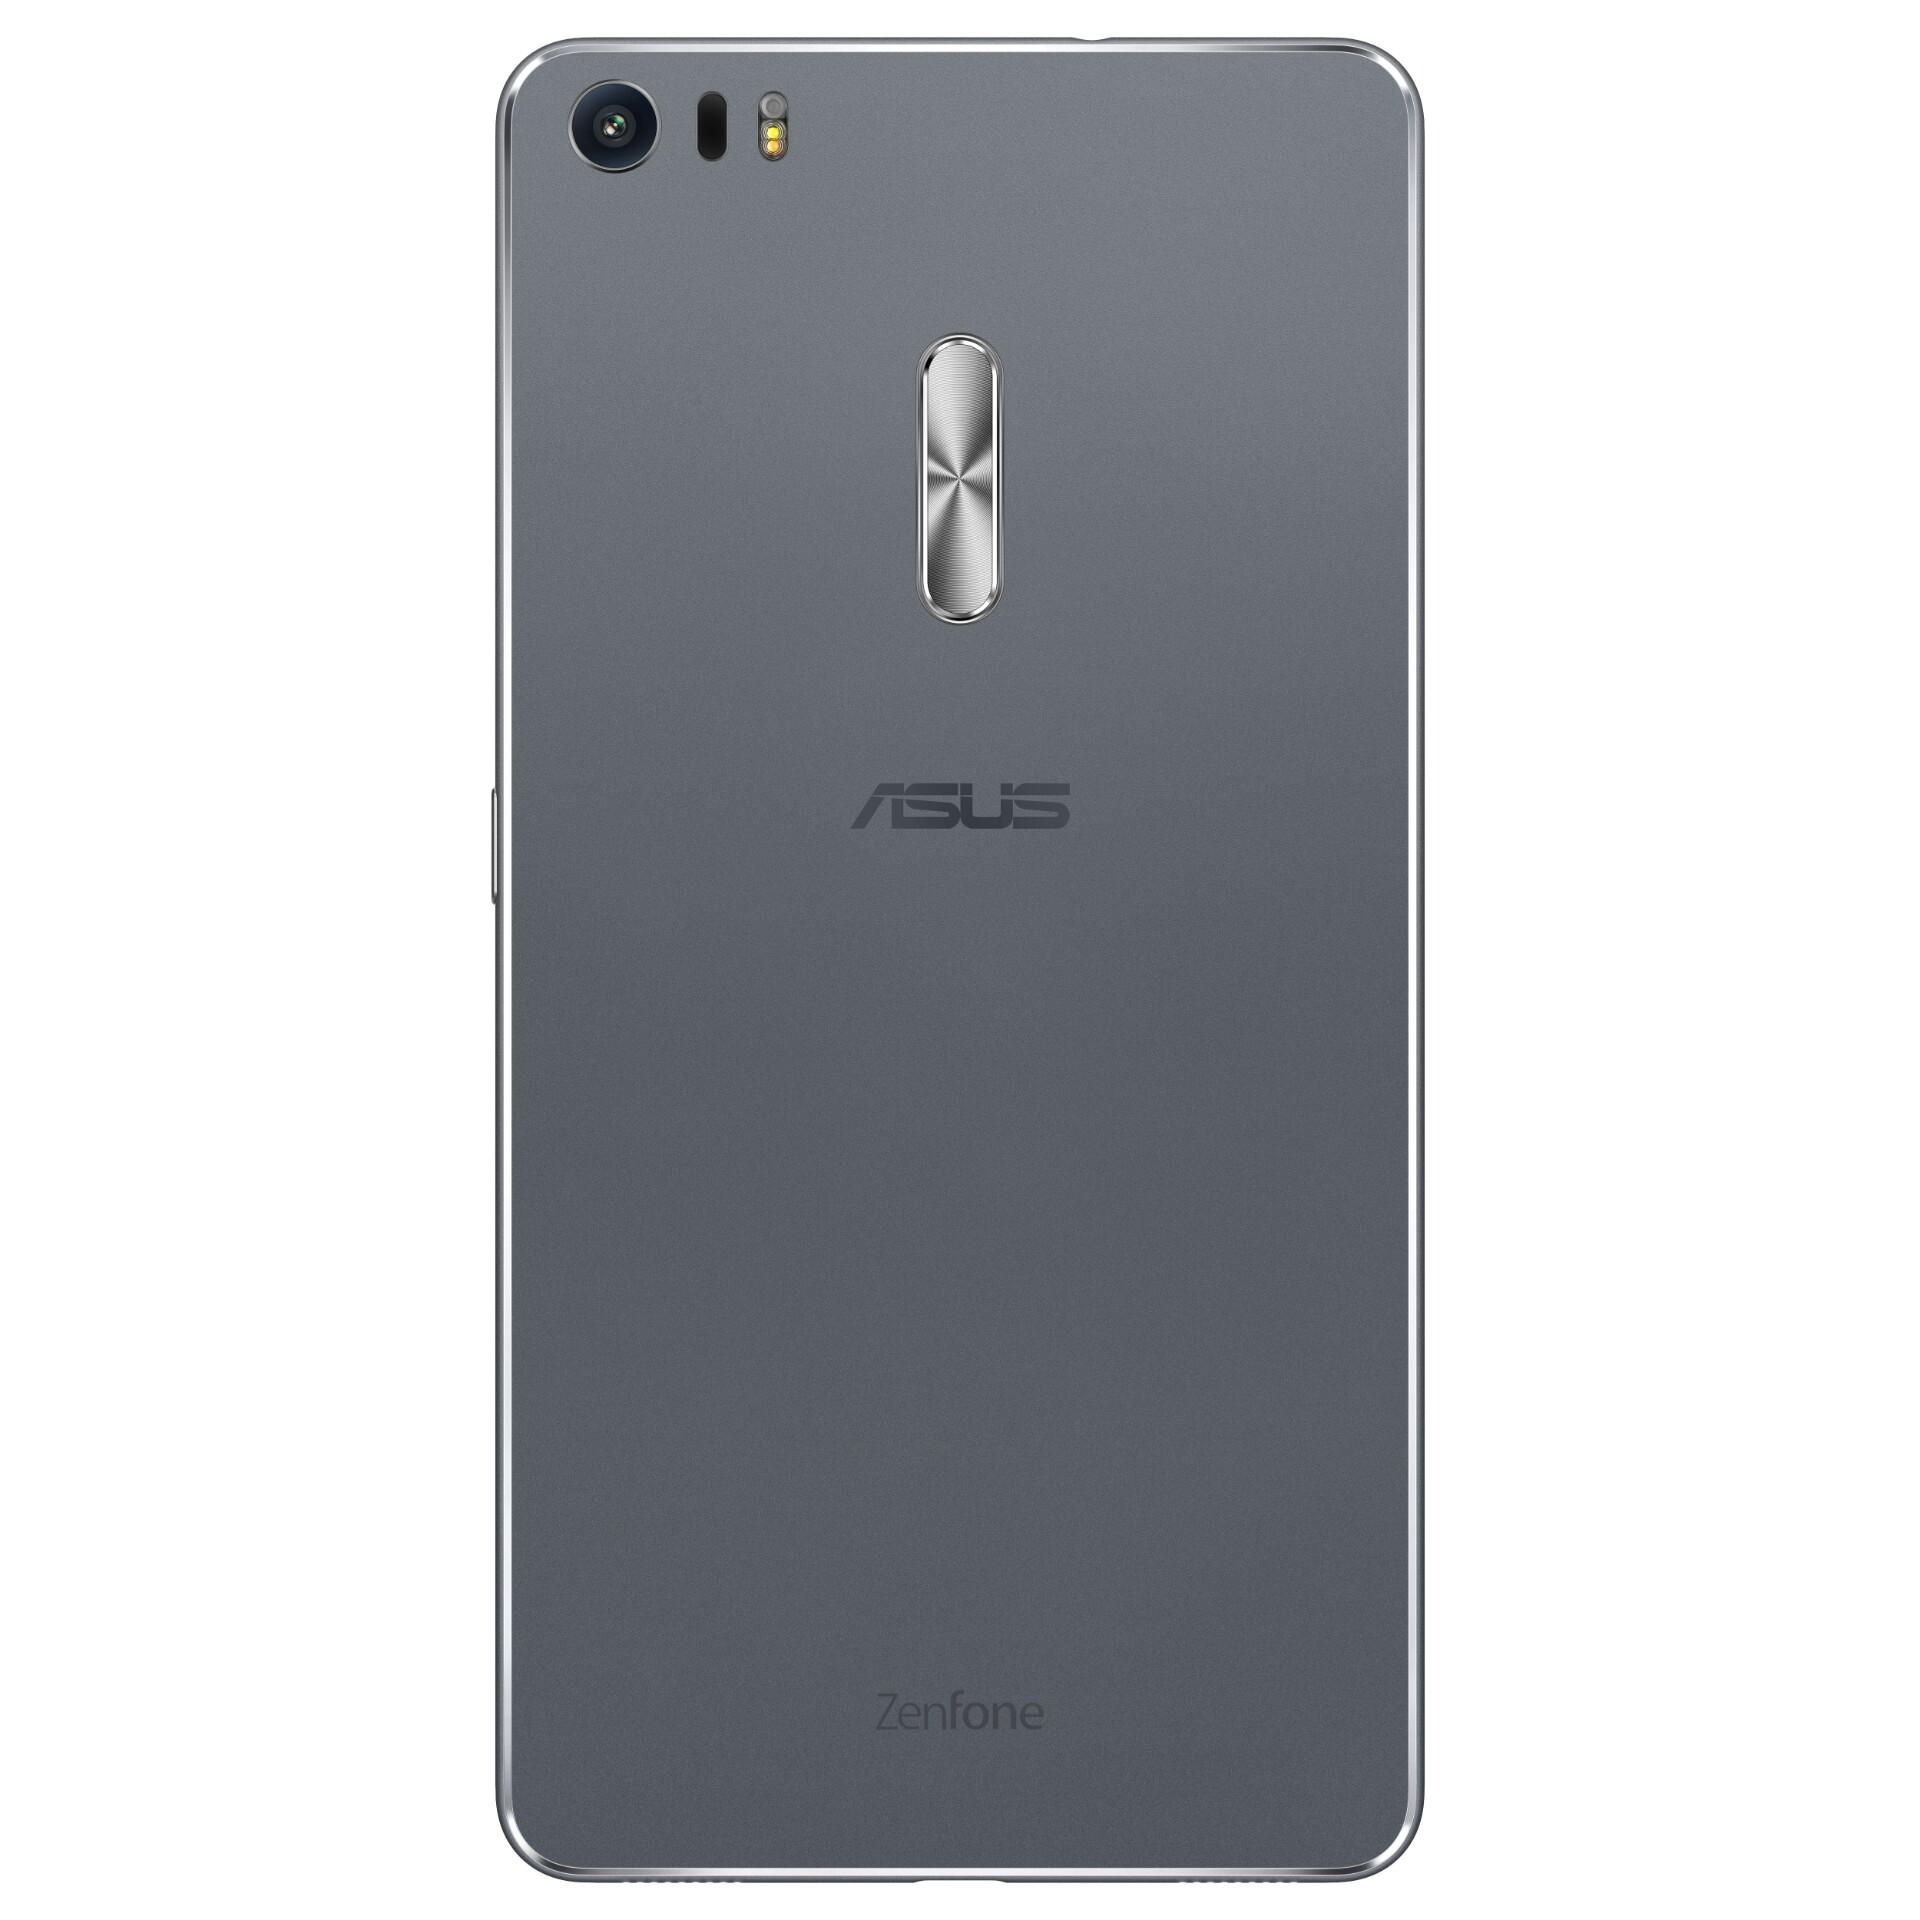 asus zenfone 3 ultra zu680kl gray image gallery. Black Bedroom Furniture Sets. Home Design Ideas